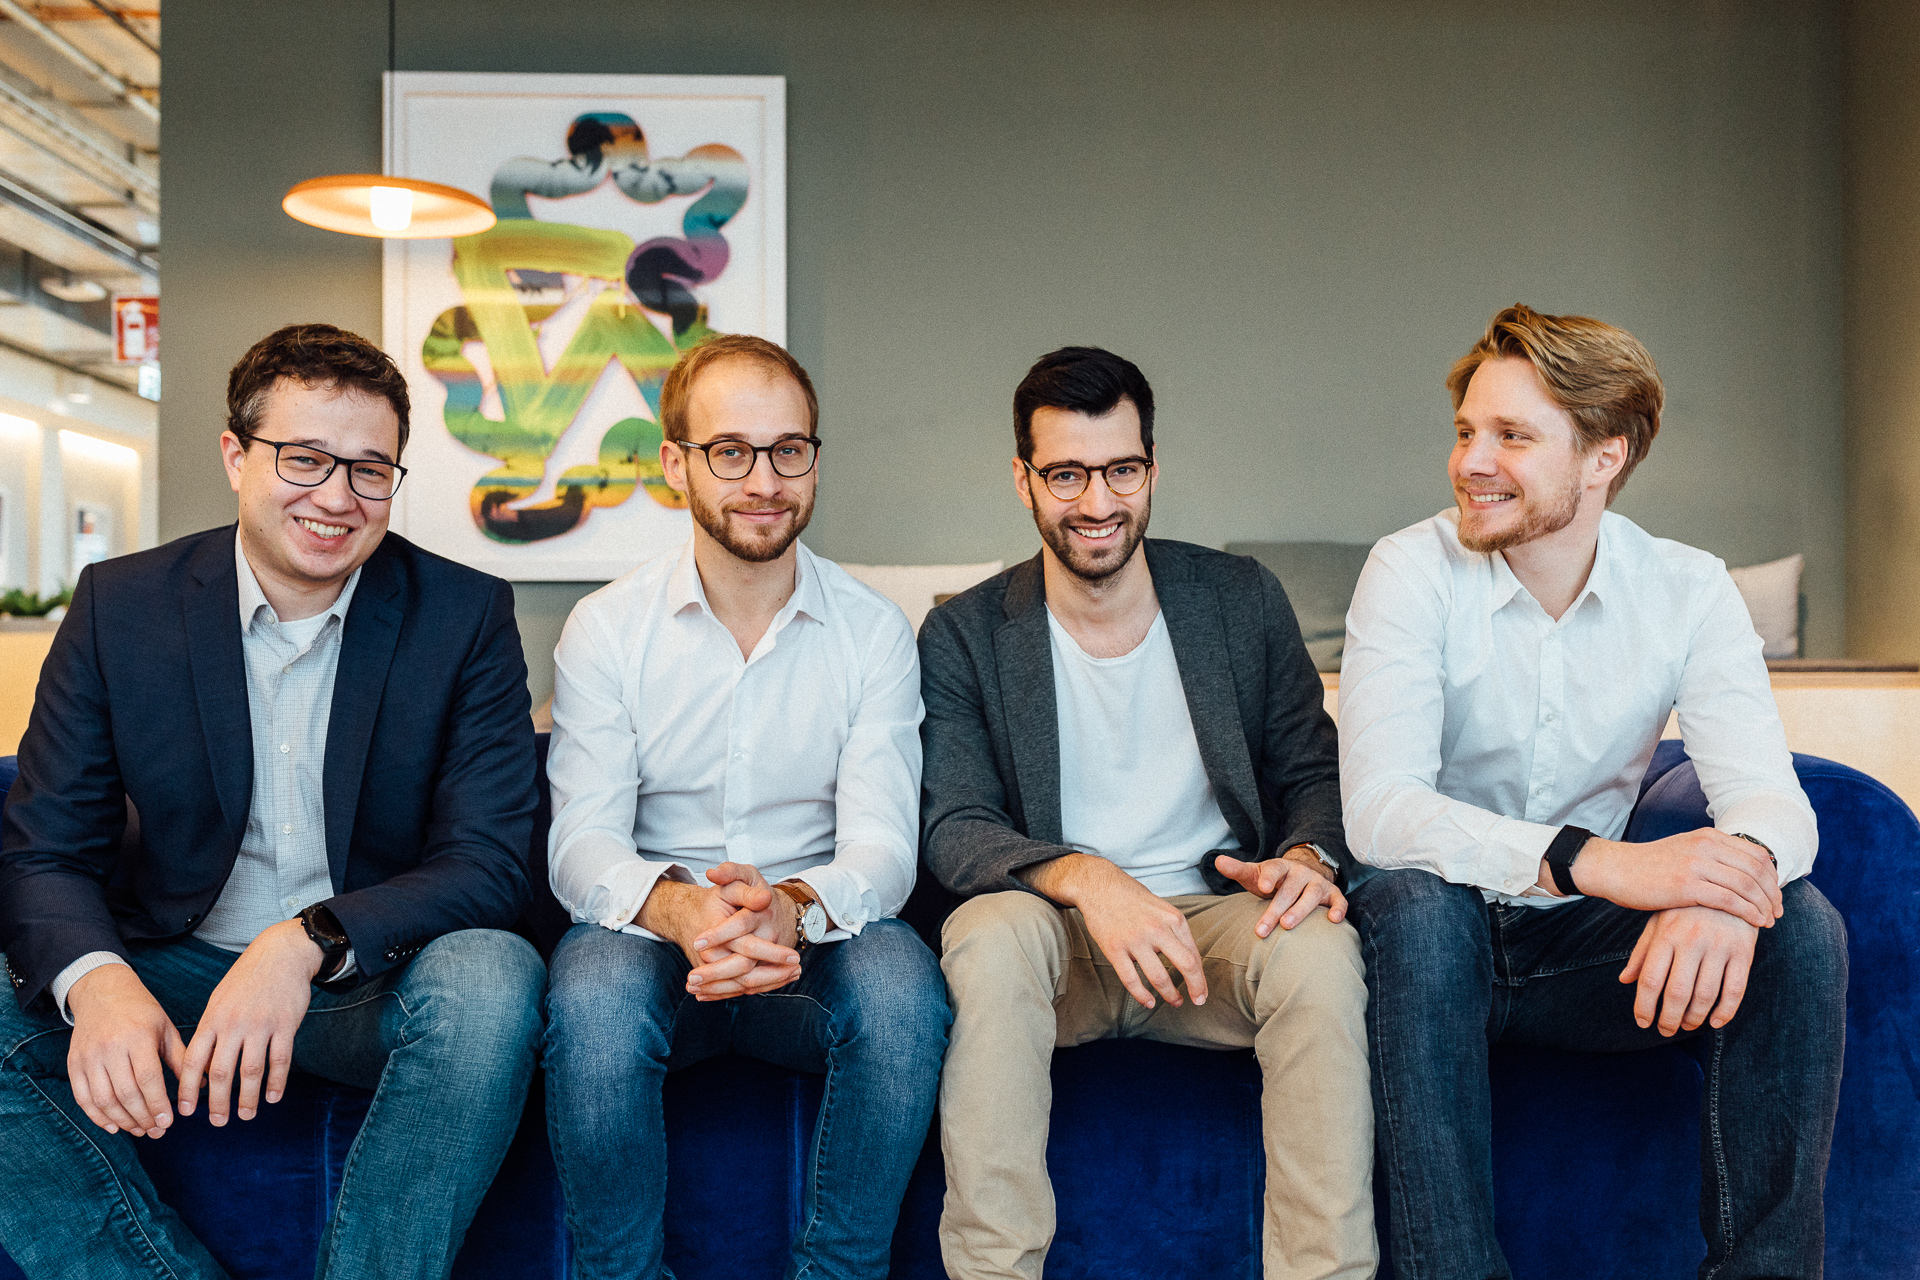 The XCNT Team (from left to right): Christoph Brand, Sebastian Graf, Tobias Grabmeier, Friedrich Arnold